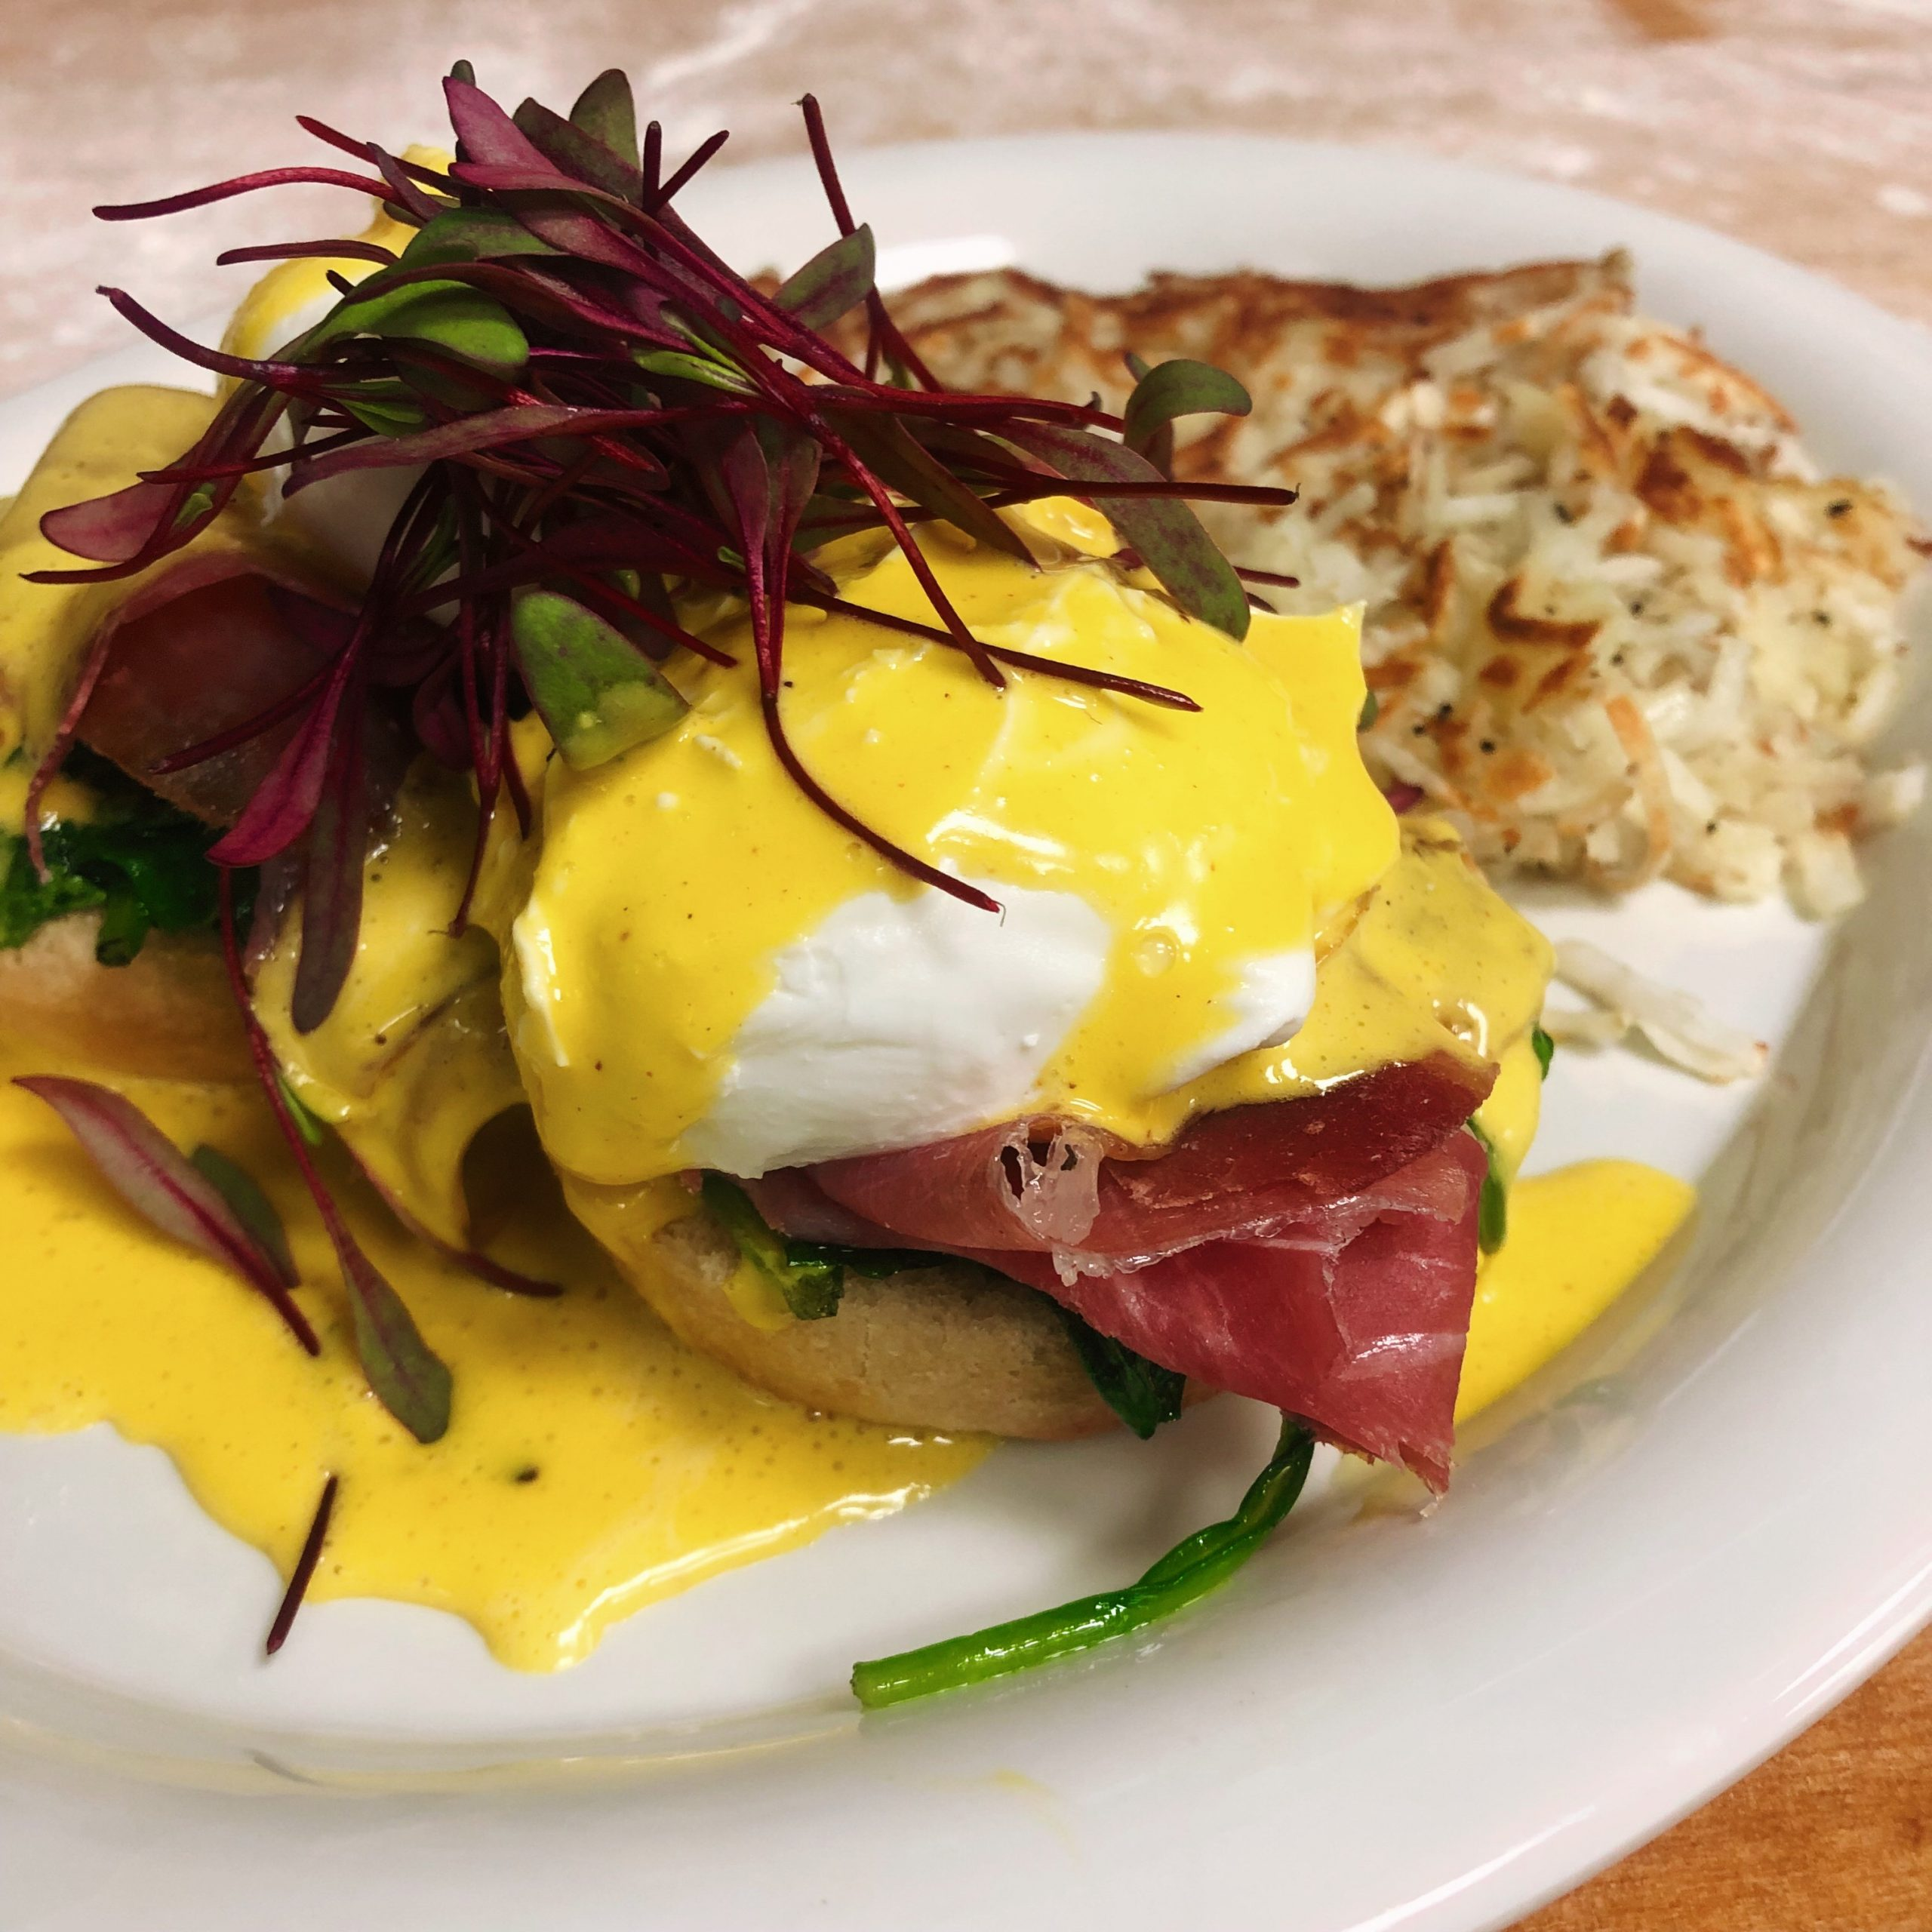 Poached egg, procuitto, arugula, served on a homemade muffin topped with hollandaise sauce